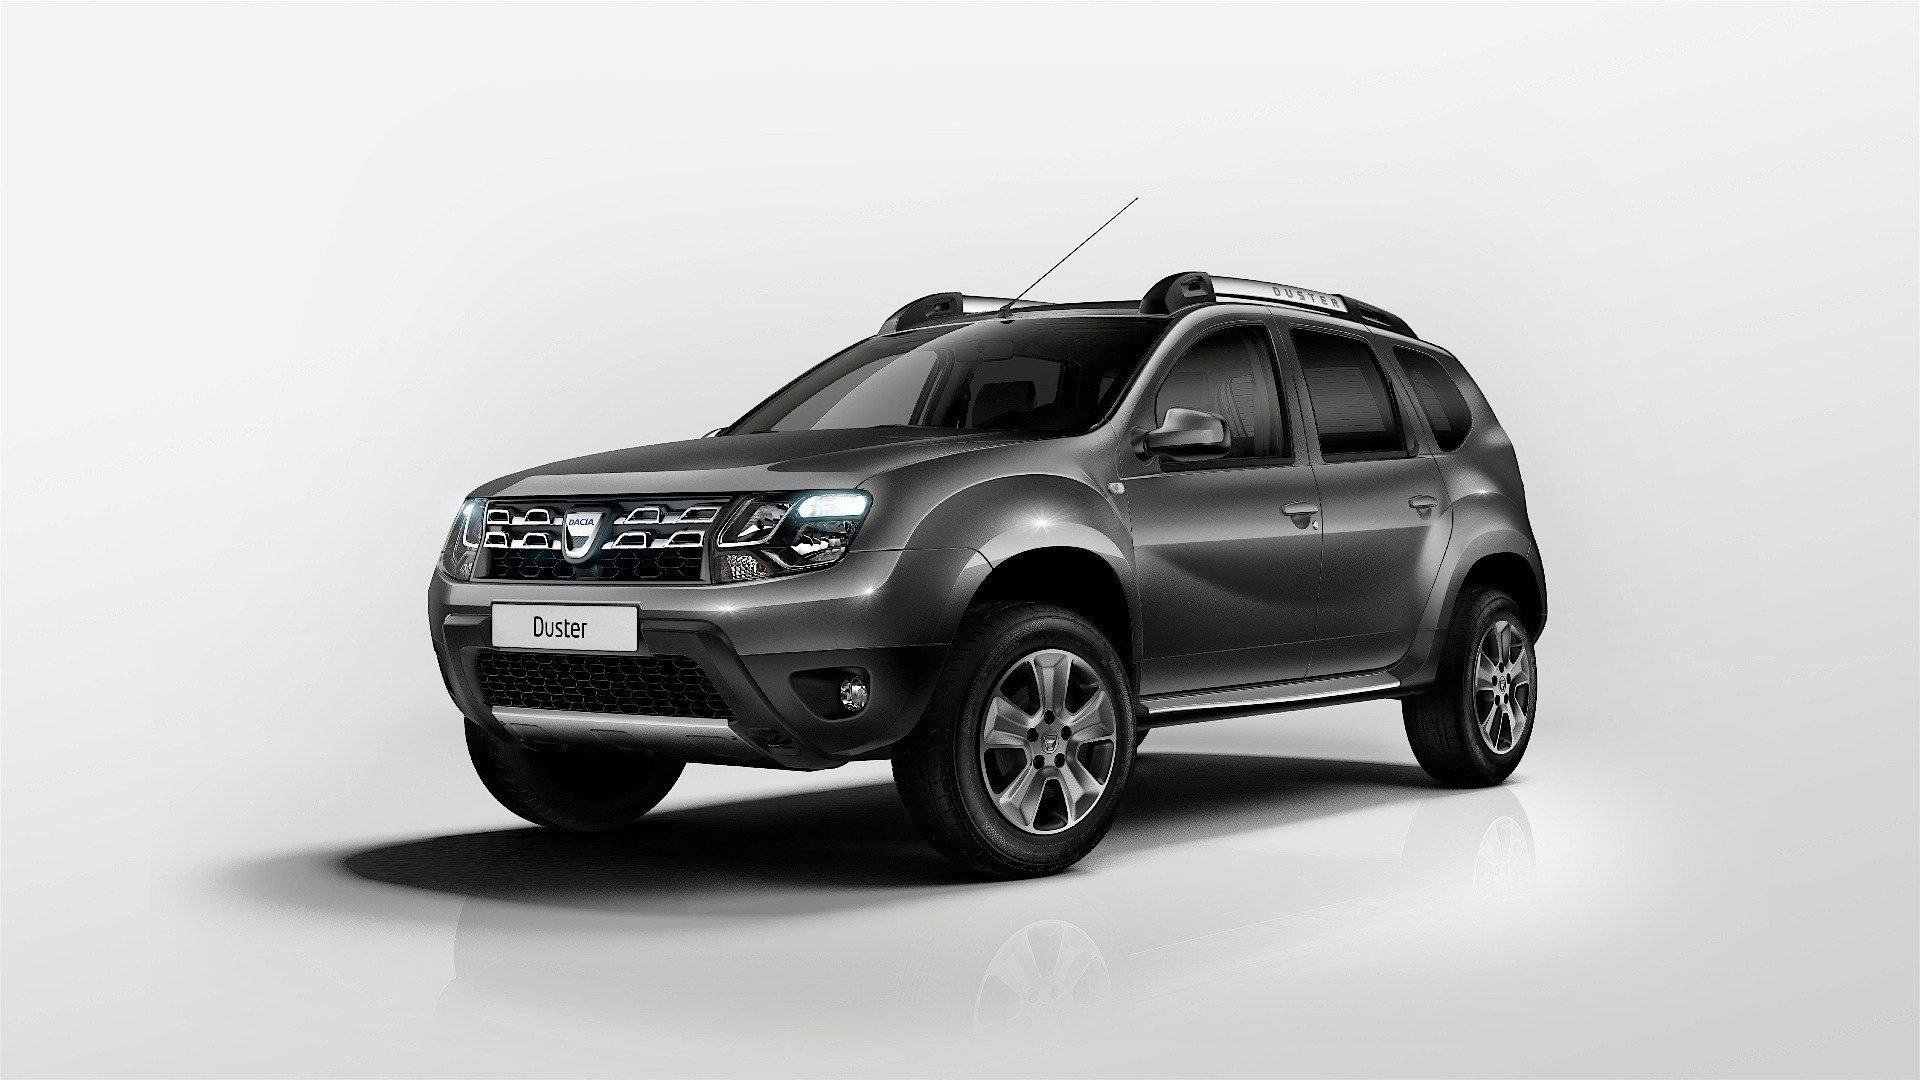 New Dacia Duster Specs Photos 2013 2014 2015 2016 2017 On This Month